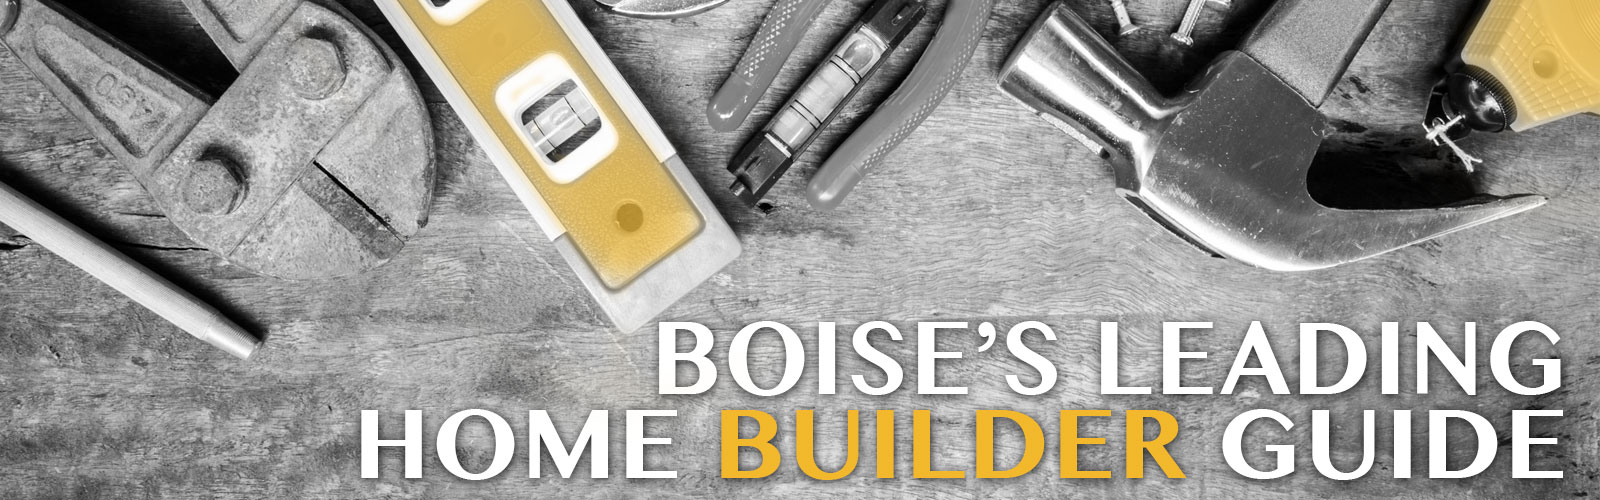 Home Builder Guide